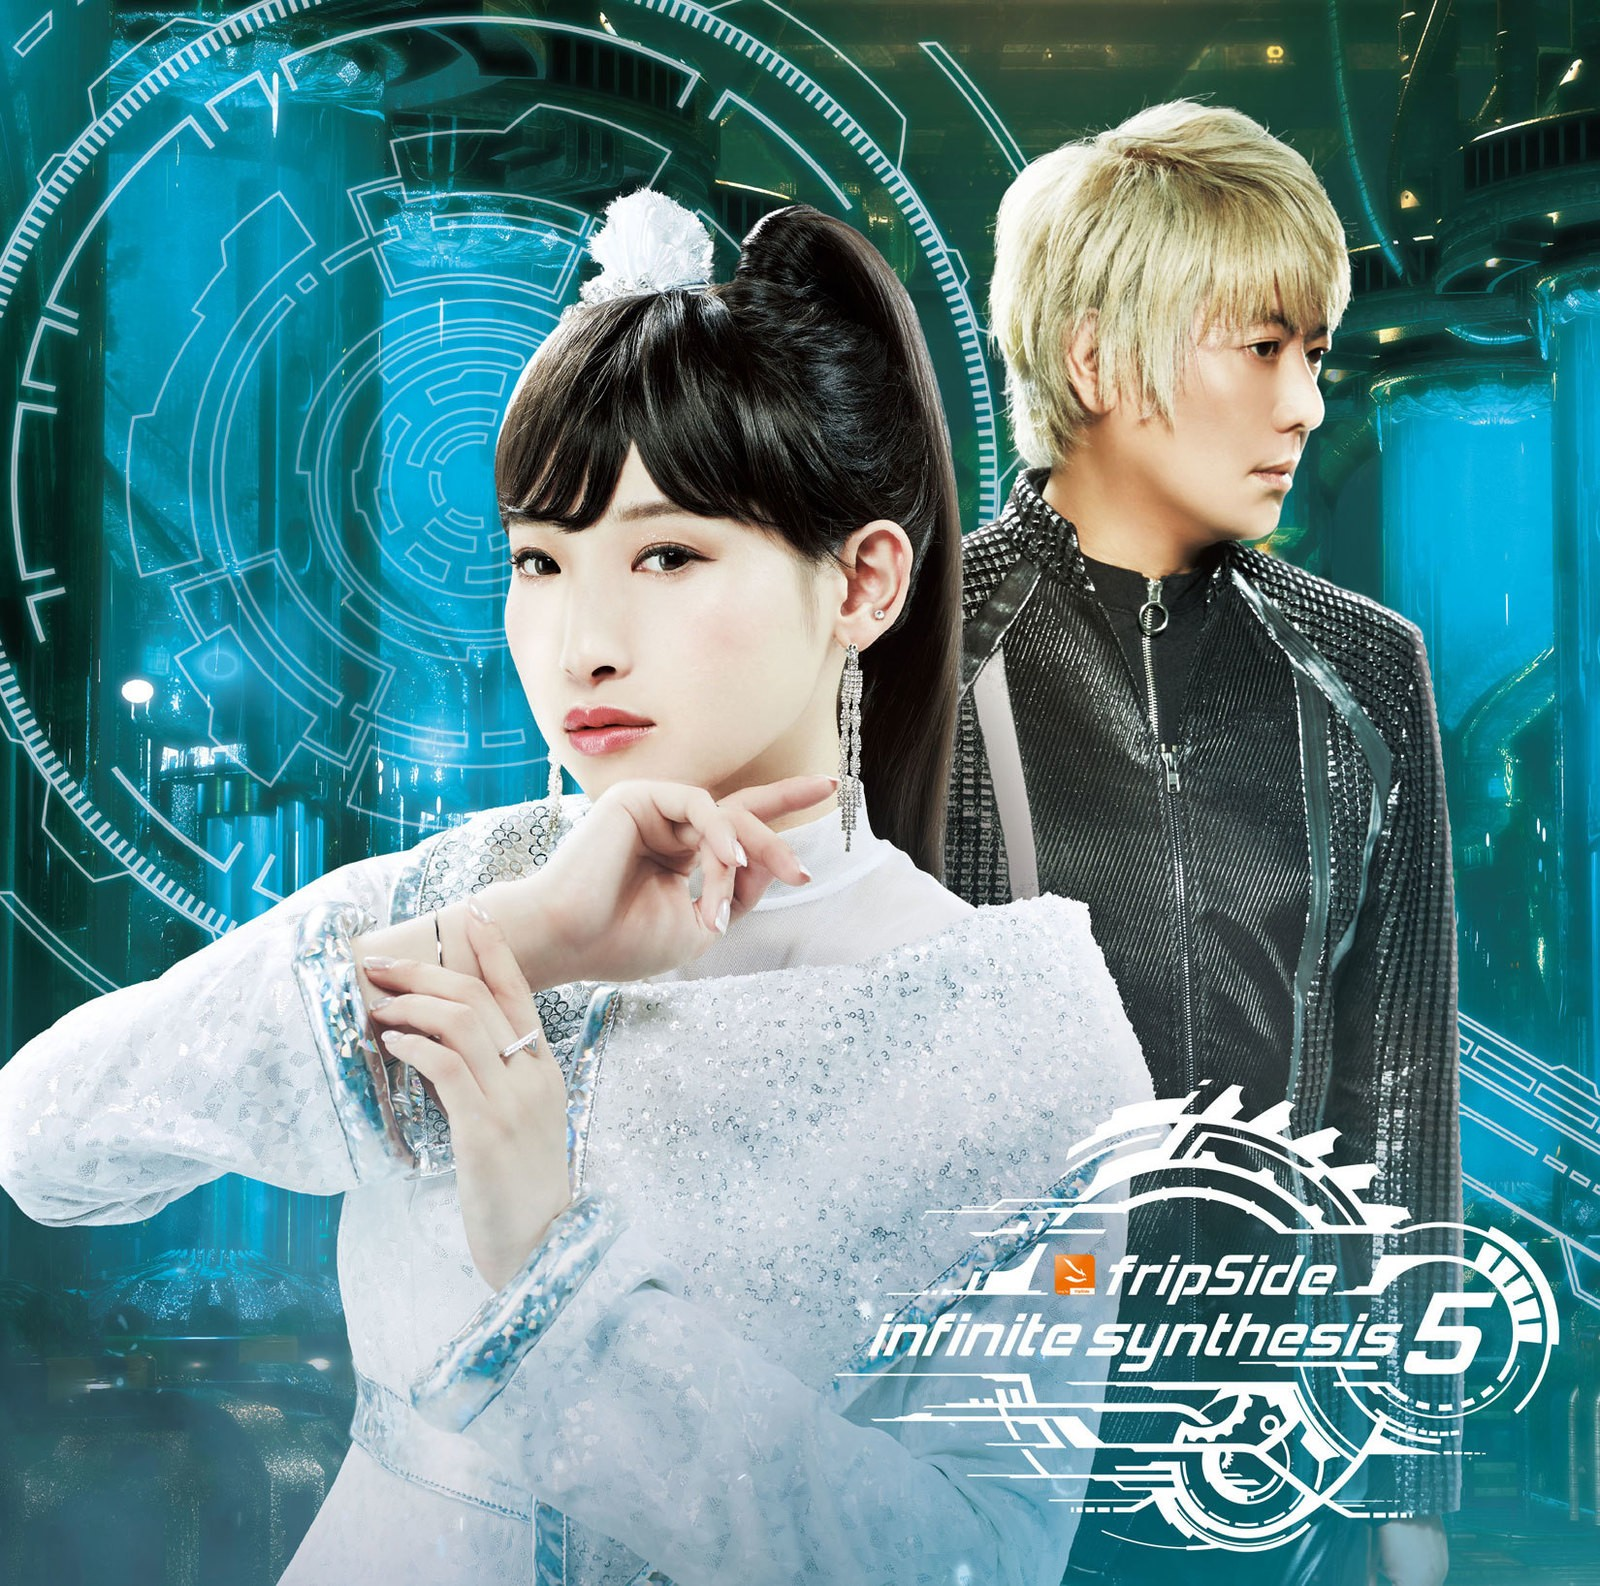 fripSide – infinite synthesis 5 [24bit Lossless + MP3 320 + Blu-ray ISO] [2019.10.30]